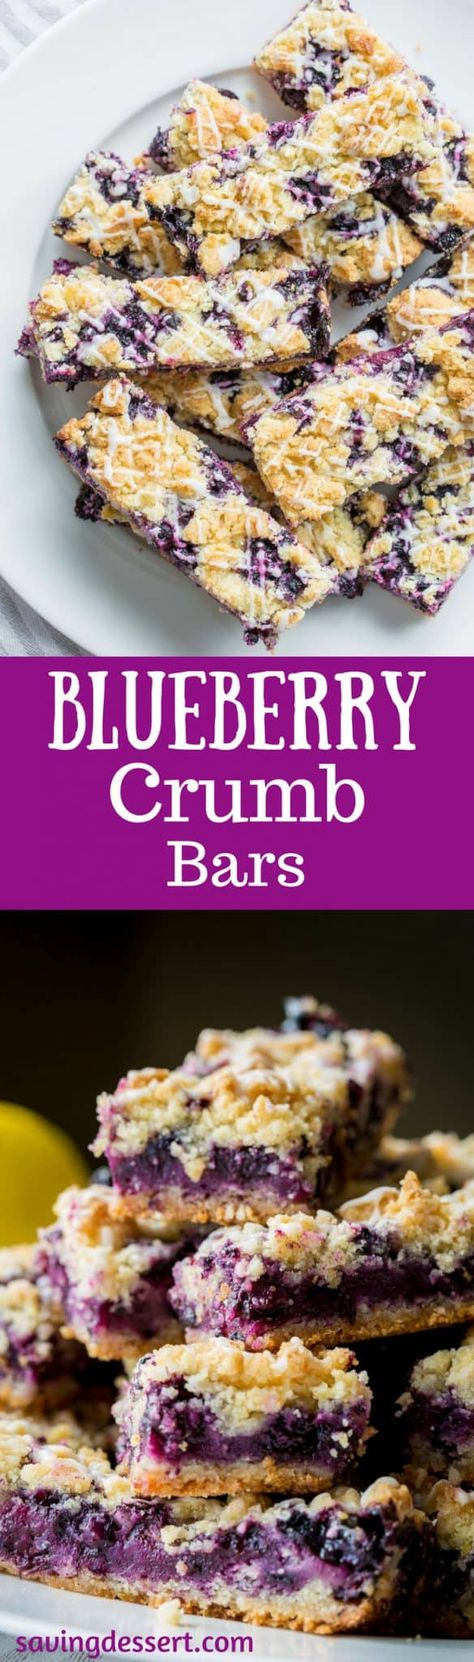 Blueberry Crumb Bars ~there's nothing like sweet summer blueberries baked in a simple crust to excite the taste buds! This simple, easy dessert is saturated with intense blueberry flavor and hints of bright, fresh lemon. www.savingdessert.com #savingroomfordessert #blueberry #blueberrycrumb #blueberrybars #blueberrydessert #crumbbars #cookiebars #crumble